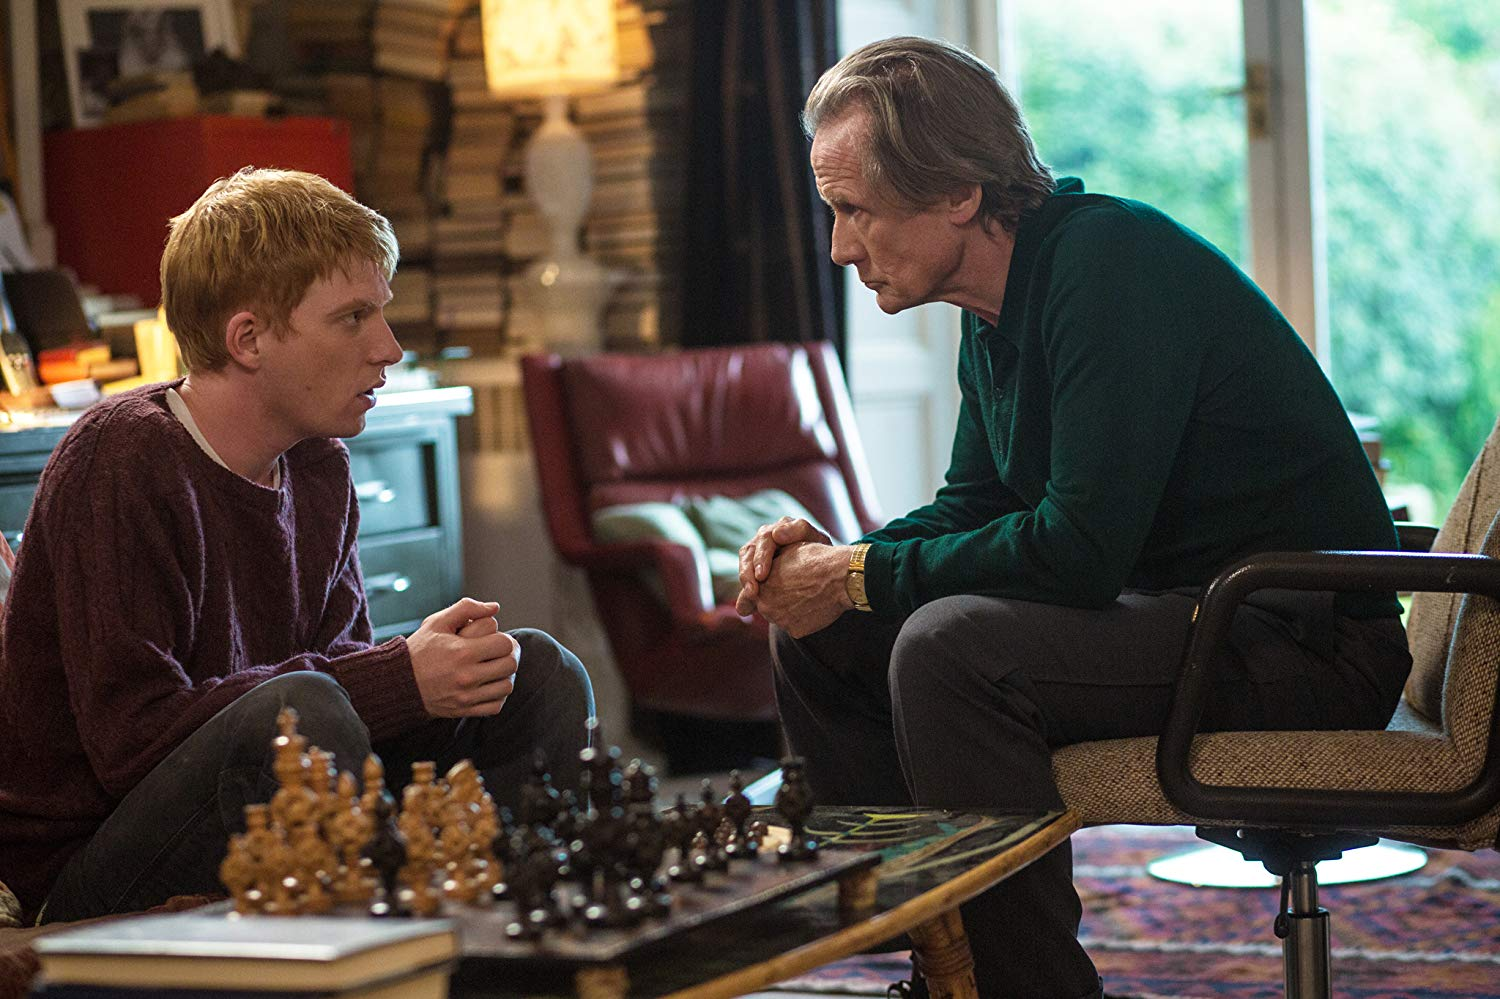 (l to r) Domhnall Gleeson and father Bill Nighy in About Time (2013)